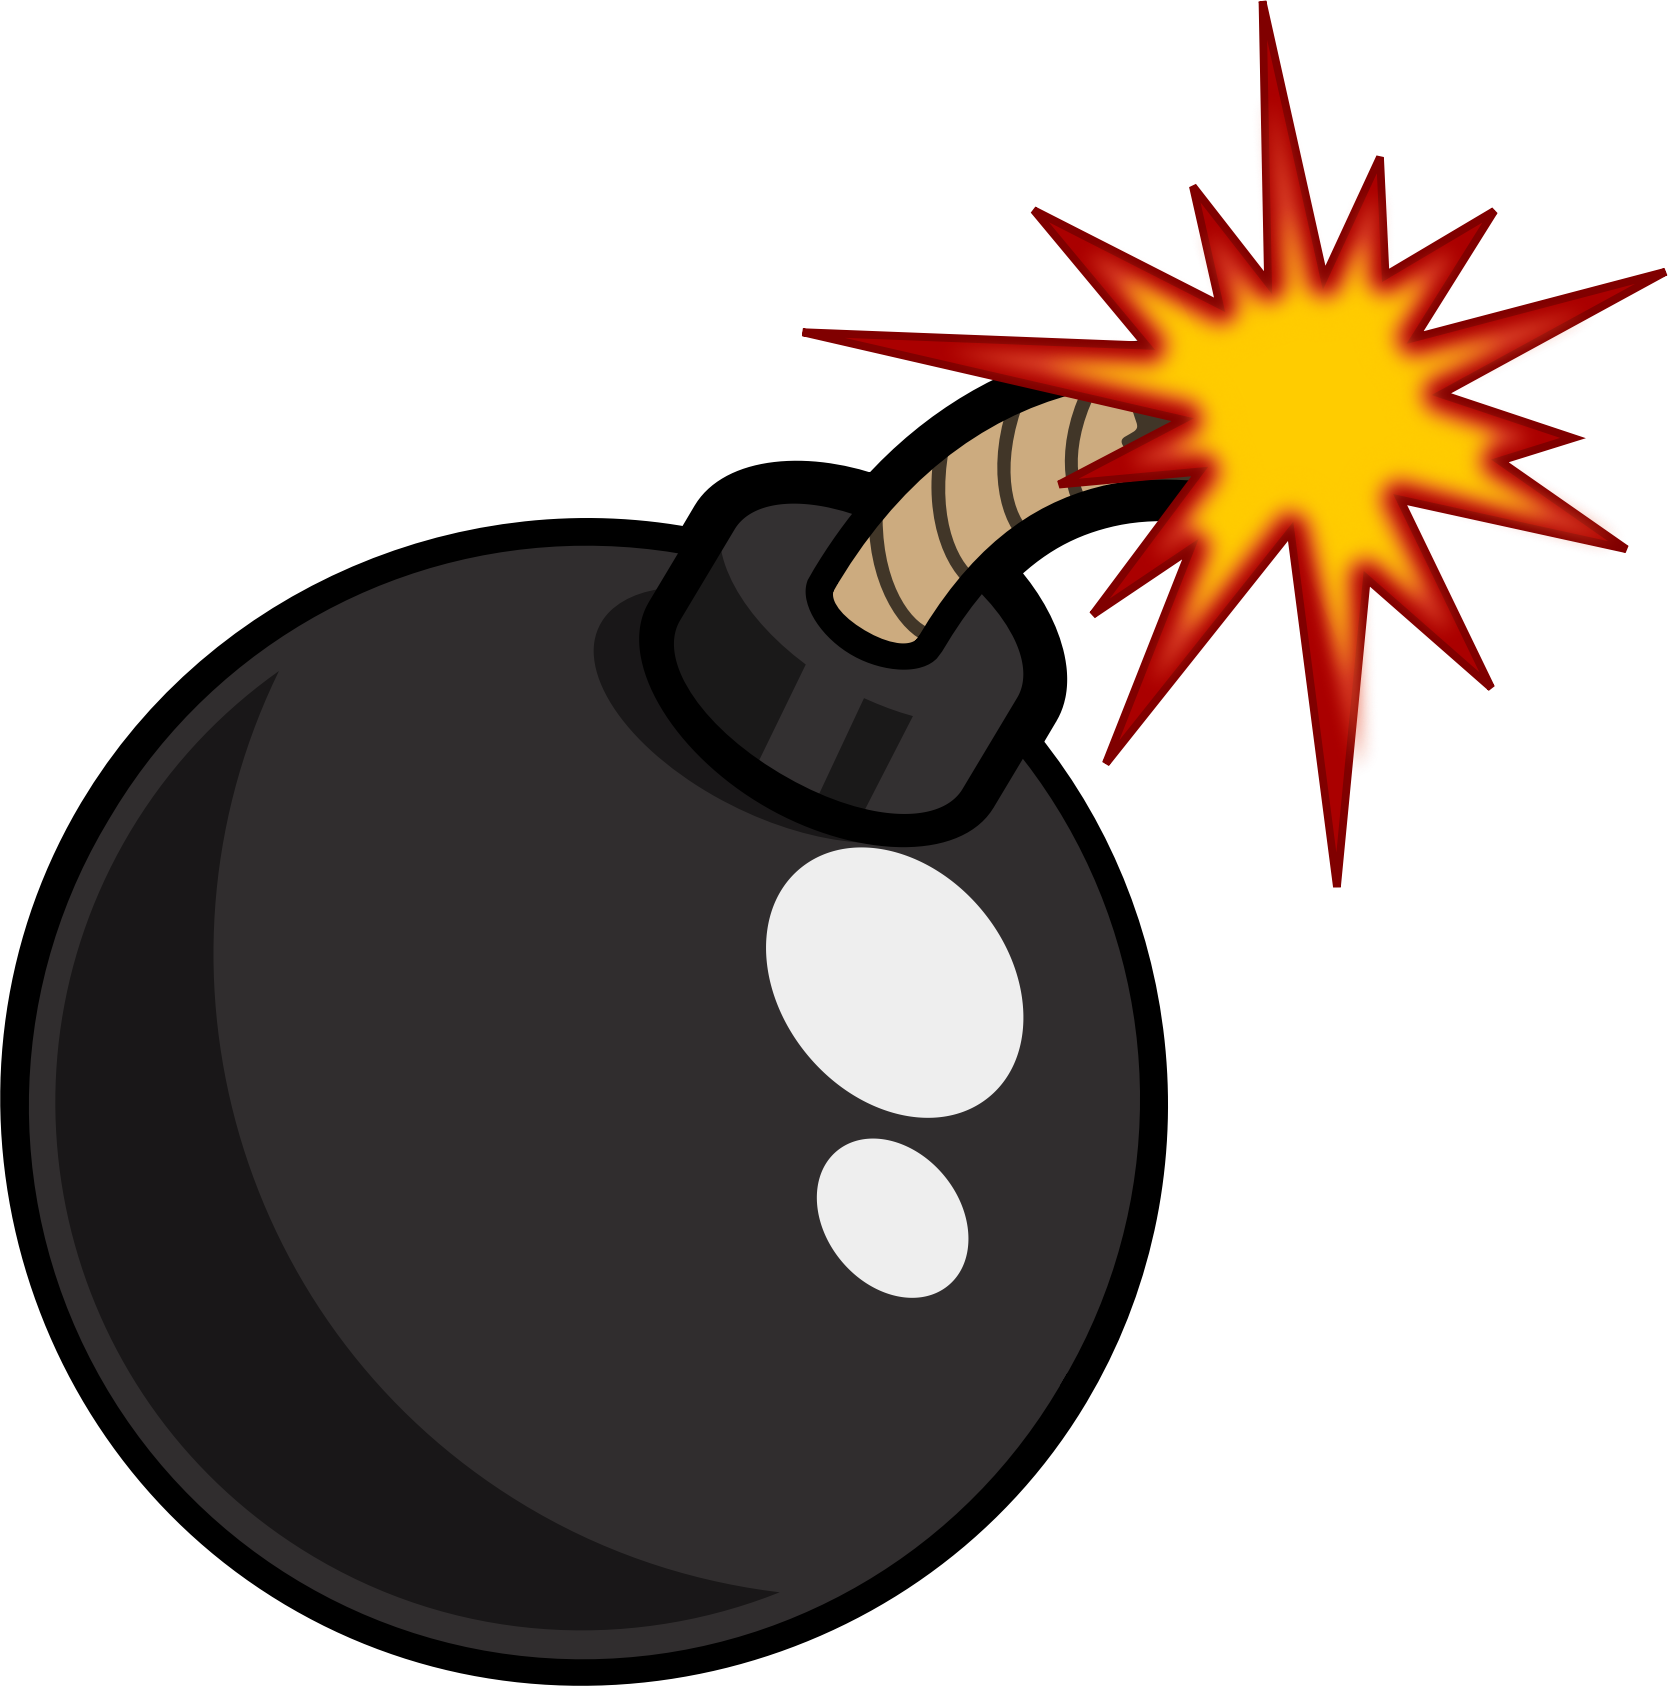 Bomb Images PNG HD image #46589